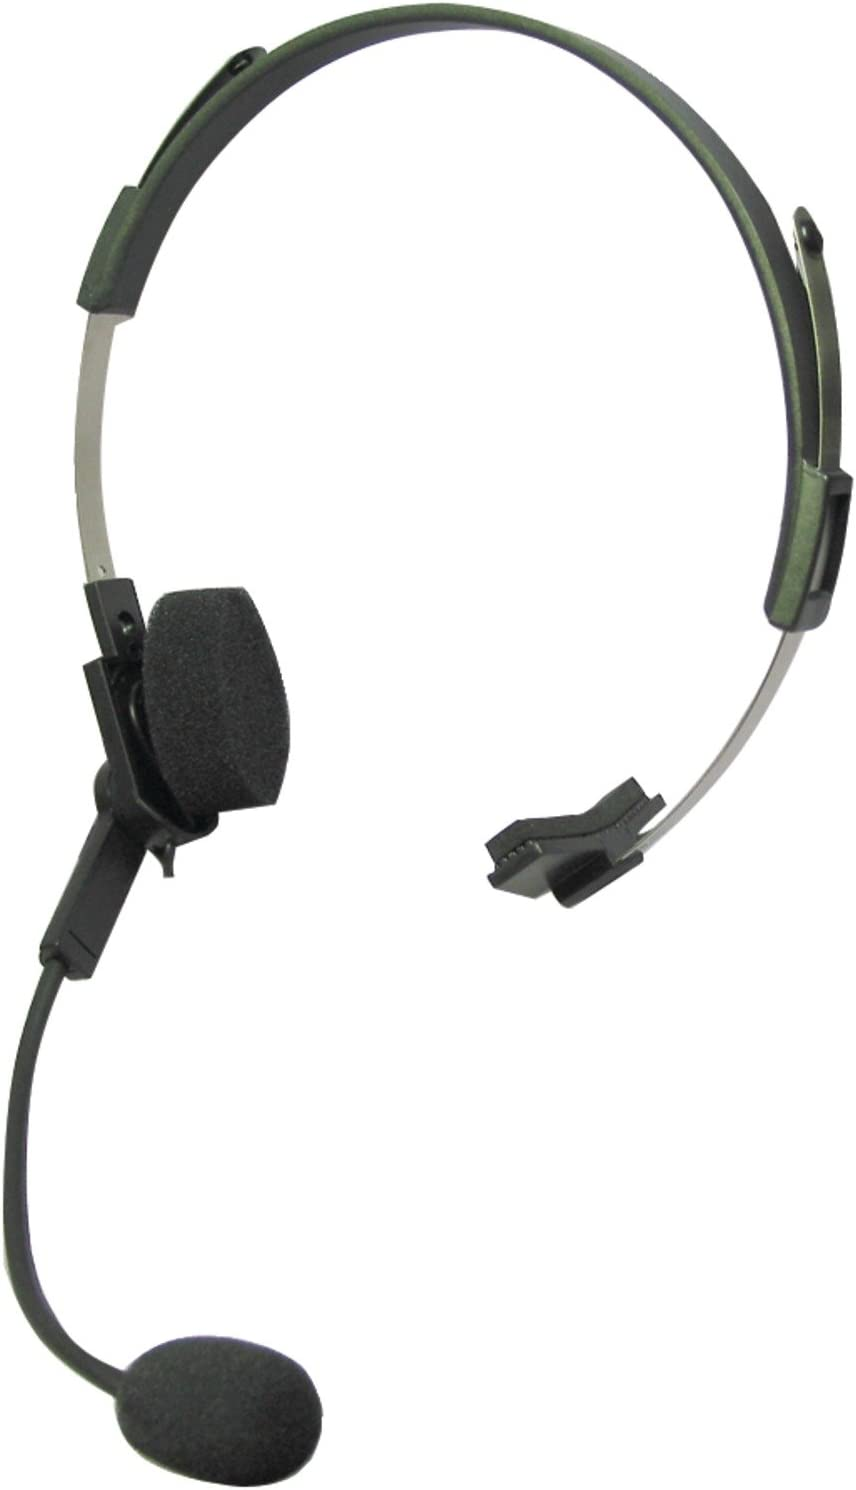 Motorola 53725 Single-Pin Talkabout Headset with Swivel Boom Microphone, Voice Activated Transmission (VOX) Capable, Compatible with TALKABOUT Radios